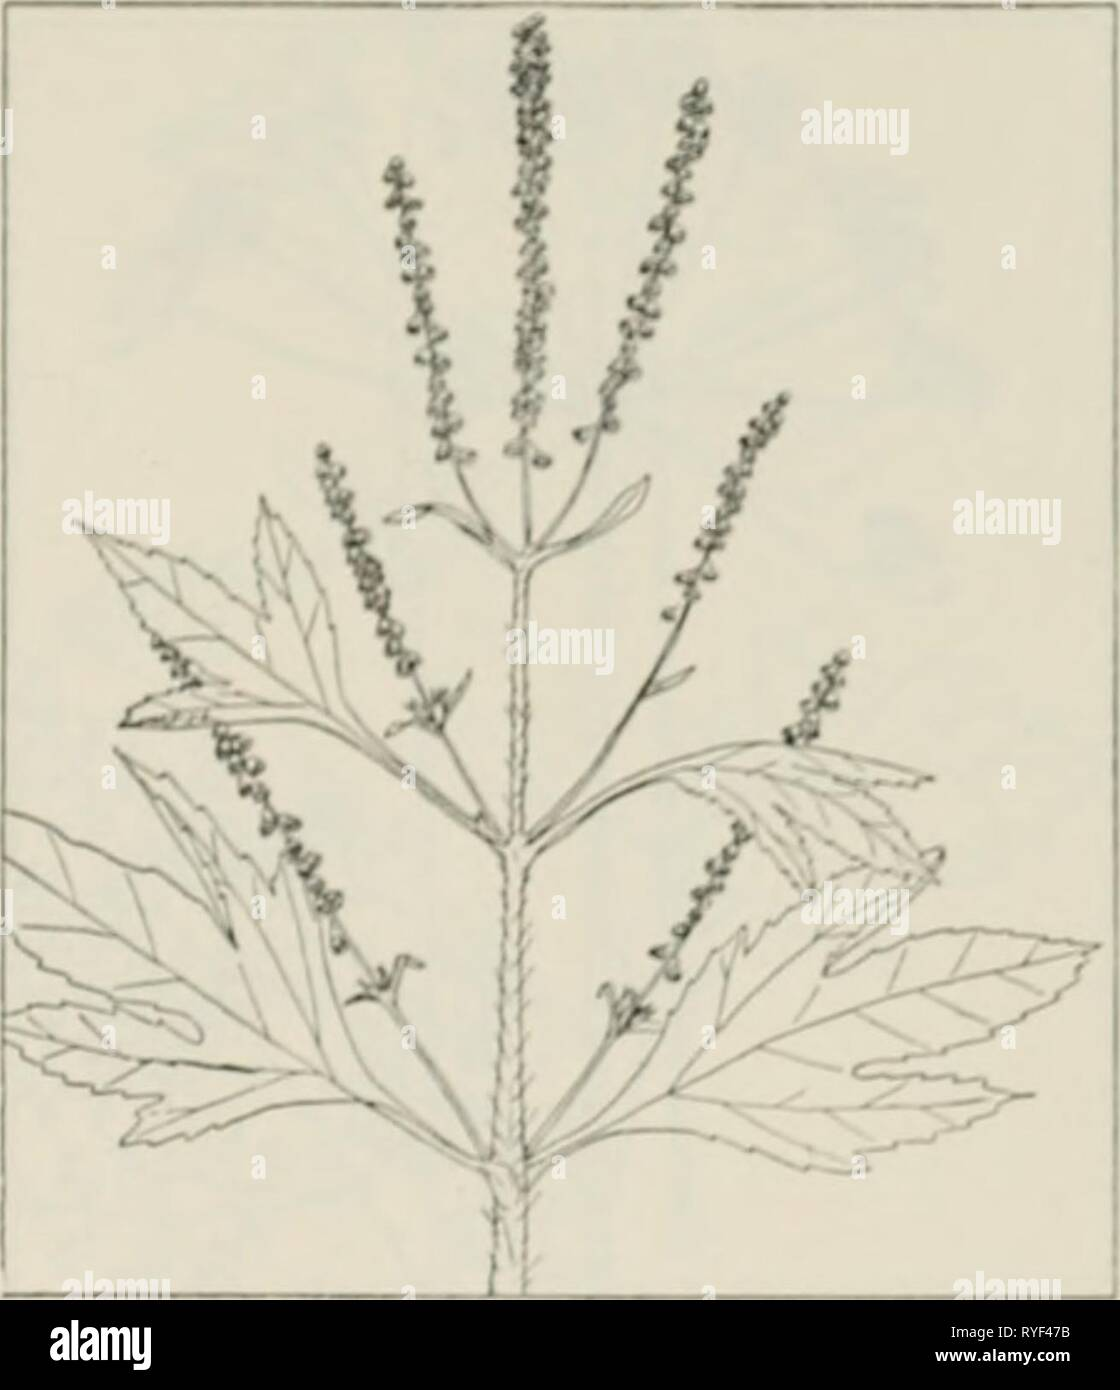 The drug plants of Illinois  drugplantsofilli44teho Year: 1951  Tehon THE DRUG PLANTS OF ILLINOIS 19 AMBROSIA TRIFIDA L. Giant rag- weed, horse-weed. Compositae. — A very coarse herb up to '^ feet tall, aiuiual; stems stroiifj:, strai;^lit, branched, rough- hairy; leaves lar}j;e, opposite, petioled, ser- rate, often 10 to 12 inches wide, 3-ncrved, mostly 3-lobe(l, the lobes sharp-pointed; male flowers in green heads, the heads in loose to compact spikes up to 10 inches long; female flowers clustered in the axils of upper leaves. Leaves and tops collected  hen the plant is in flower. Extreme Stock Photo